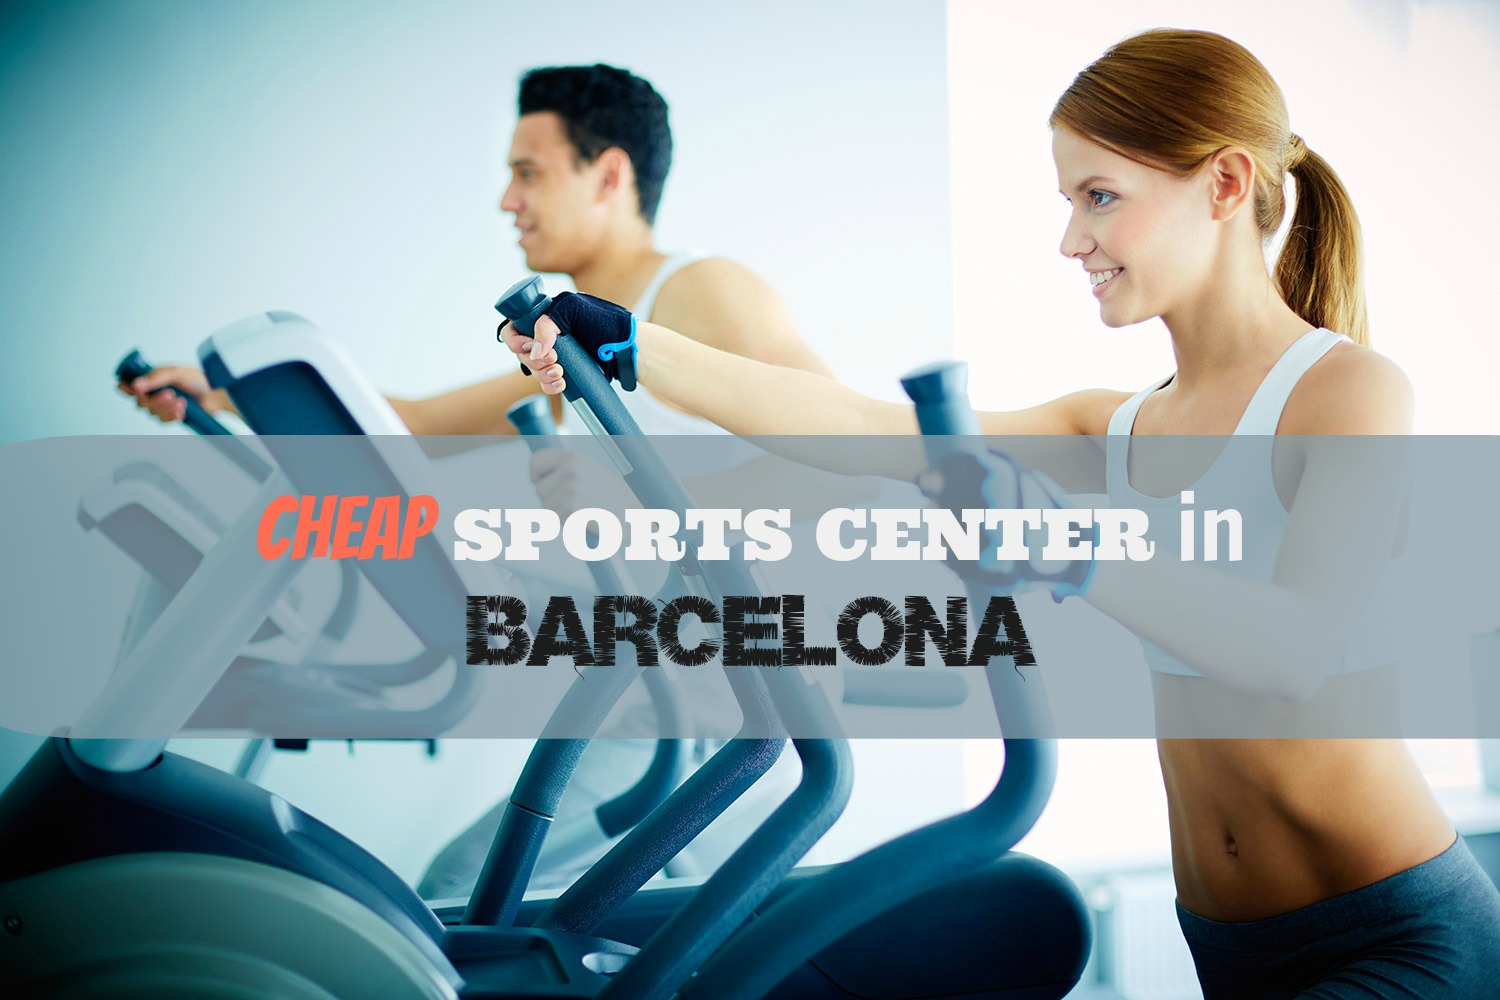 Top 3 gimnasios low cost en Barcelona